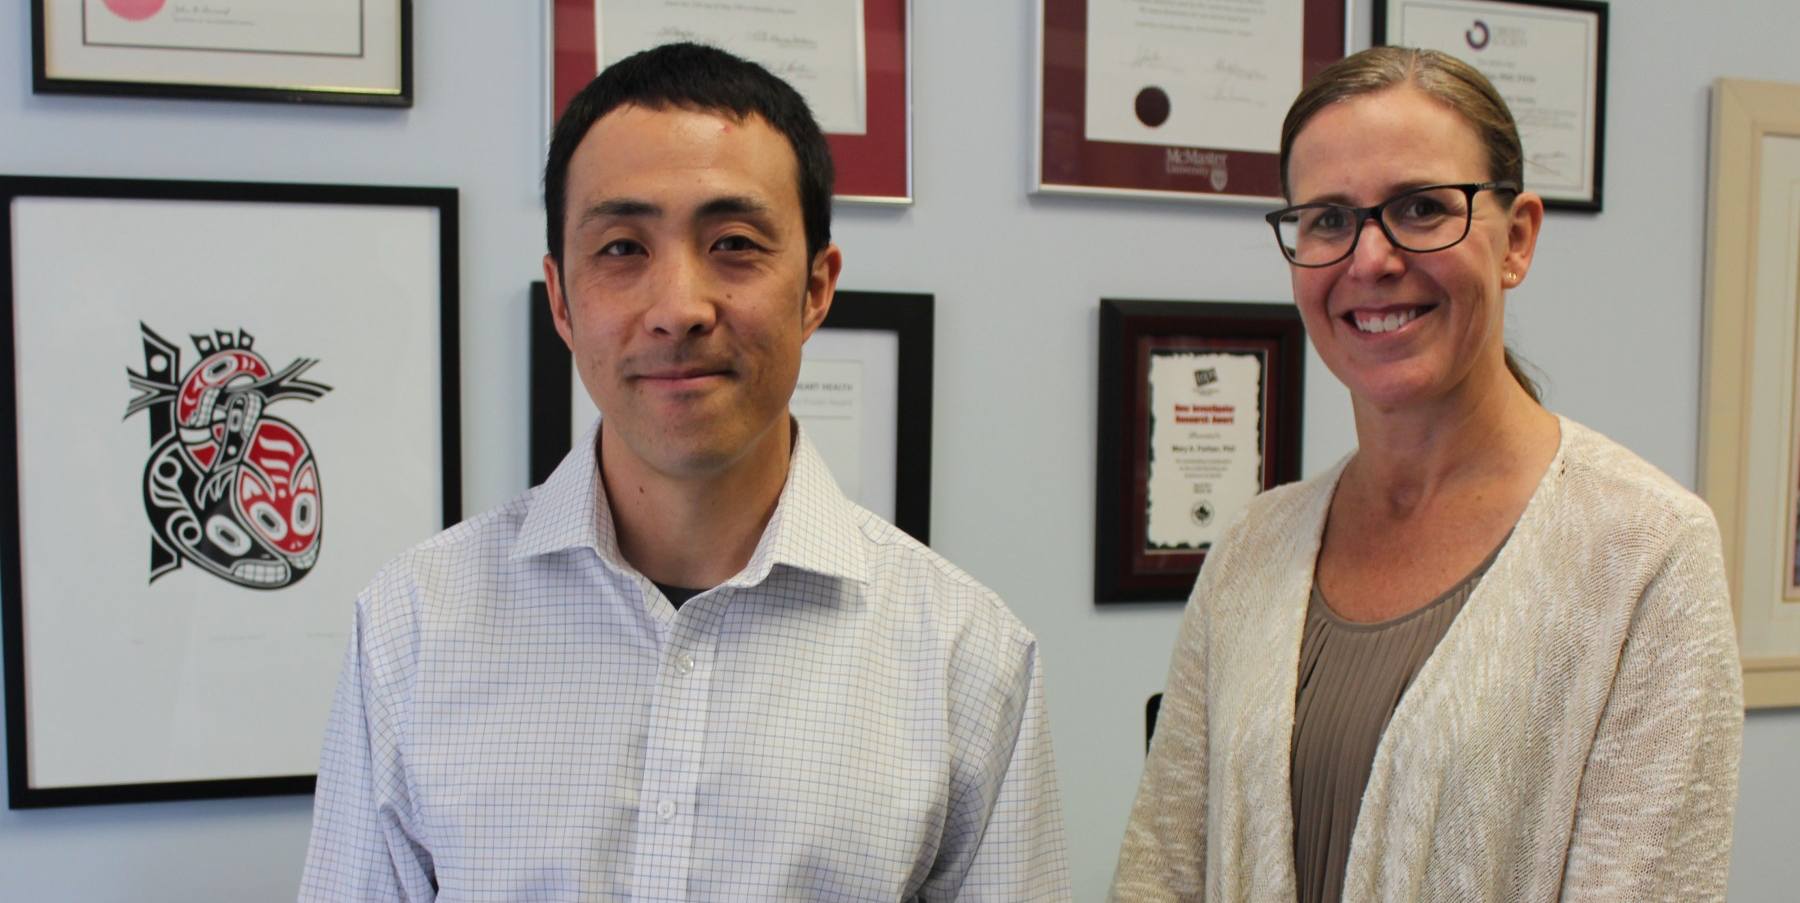 Tasuku Terada (left), postdoctoral research fellow at the Faculty of Rehabilitation Medicine and his supervisor, Mary Forhan (right), assistant professor in the Department of Occupational Therapy. (Photo by Erica Yeung)